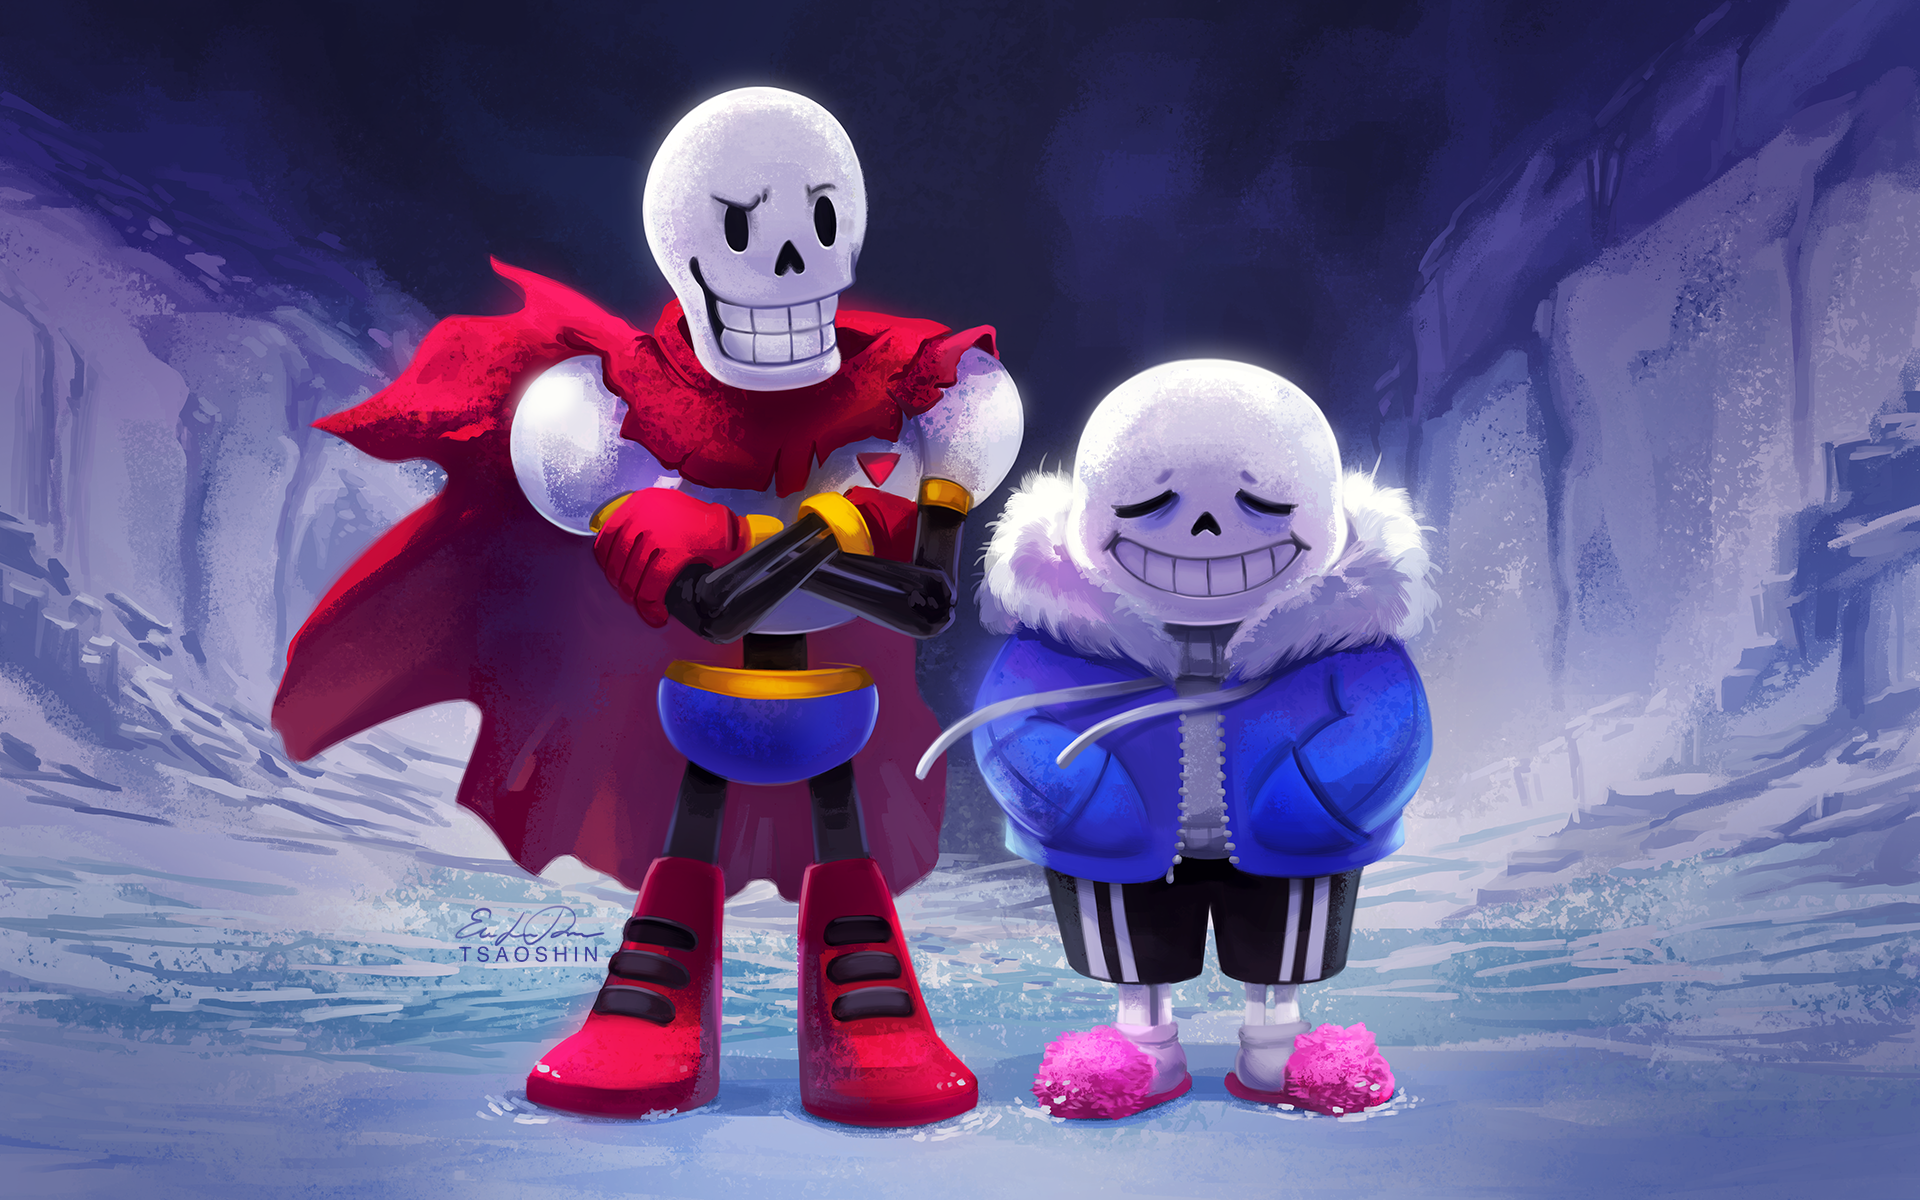 Hd Wallpaper Background Image Id709976 1920x1200 Video Game Undertale